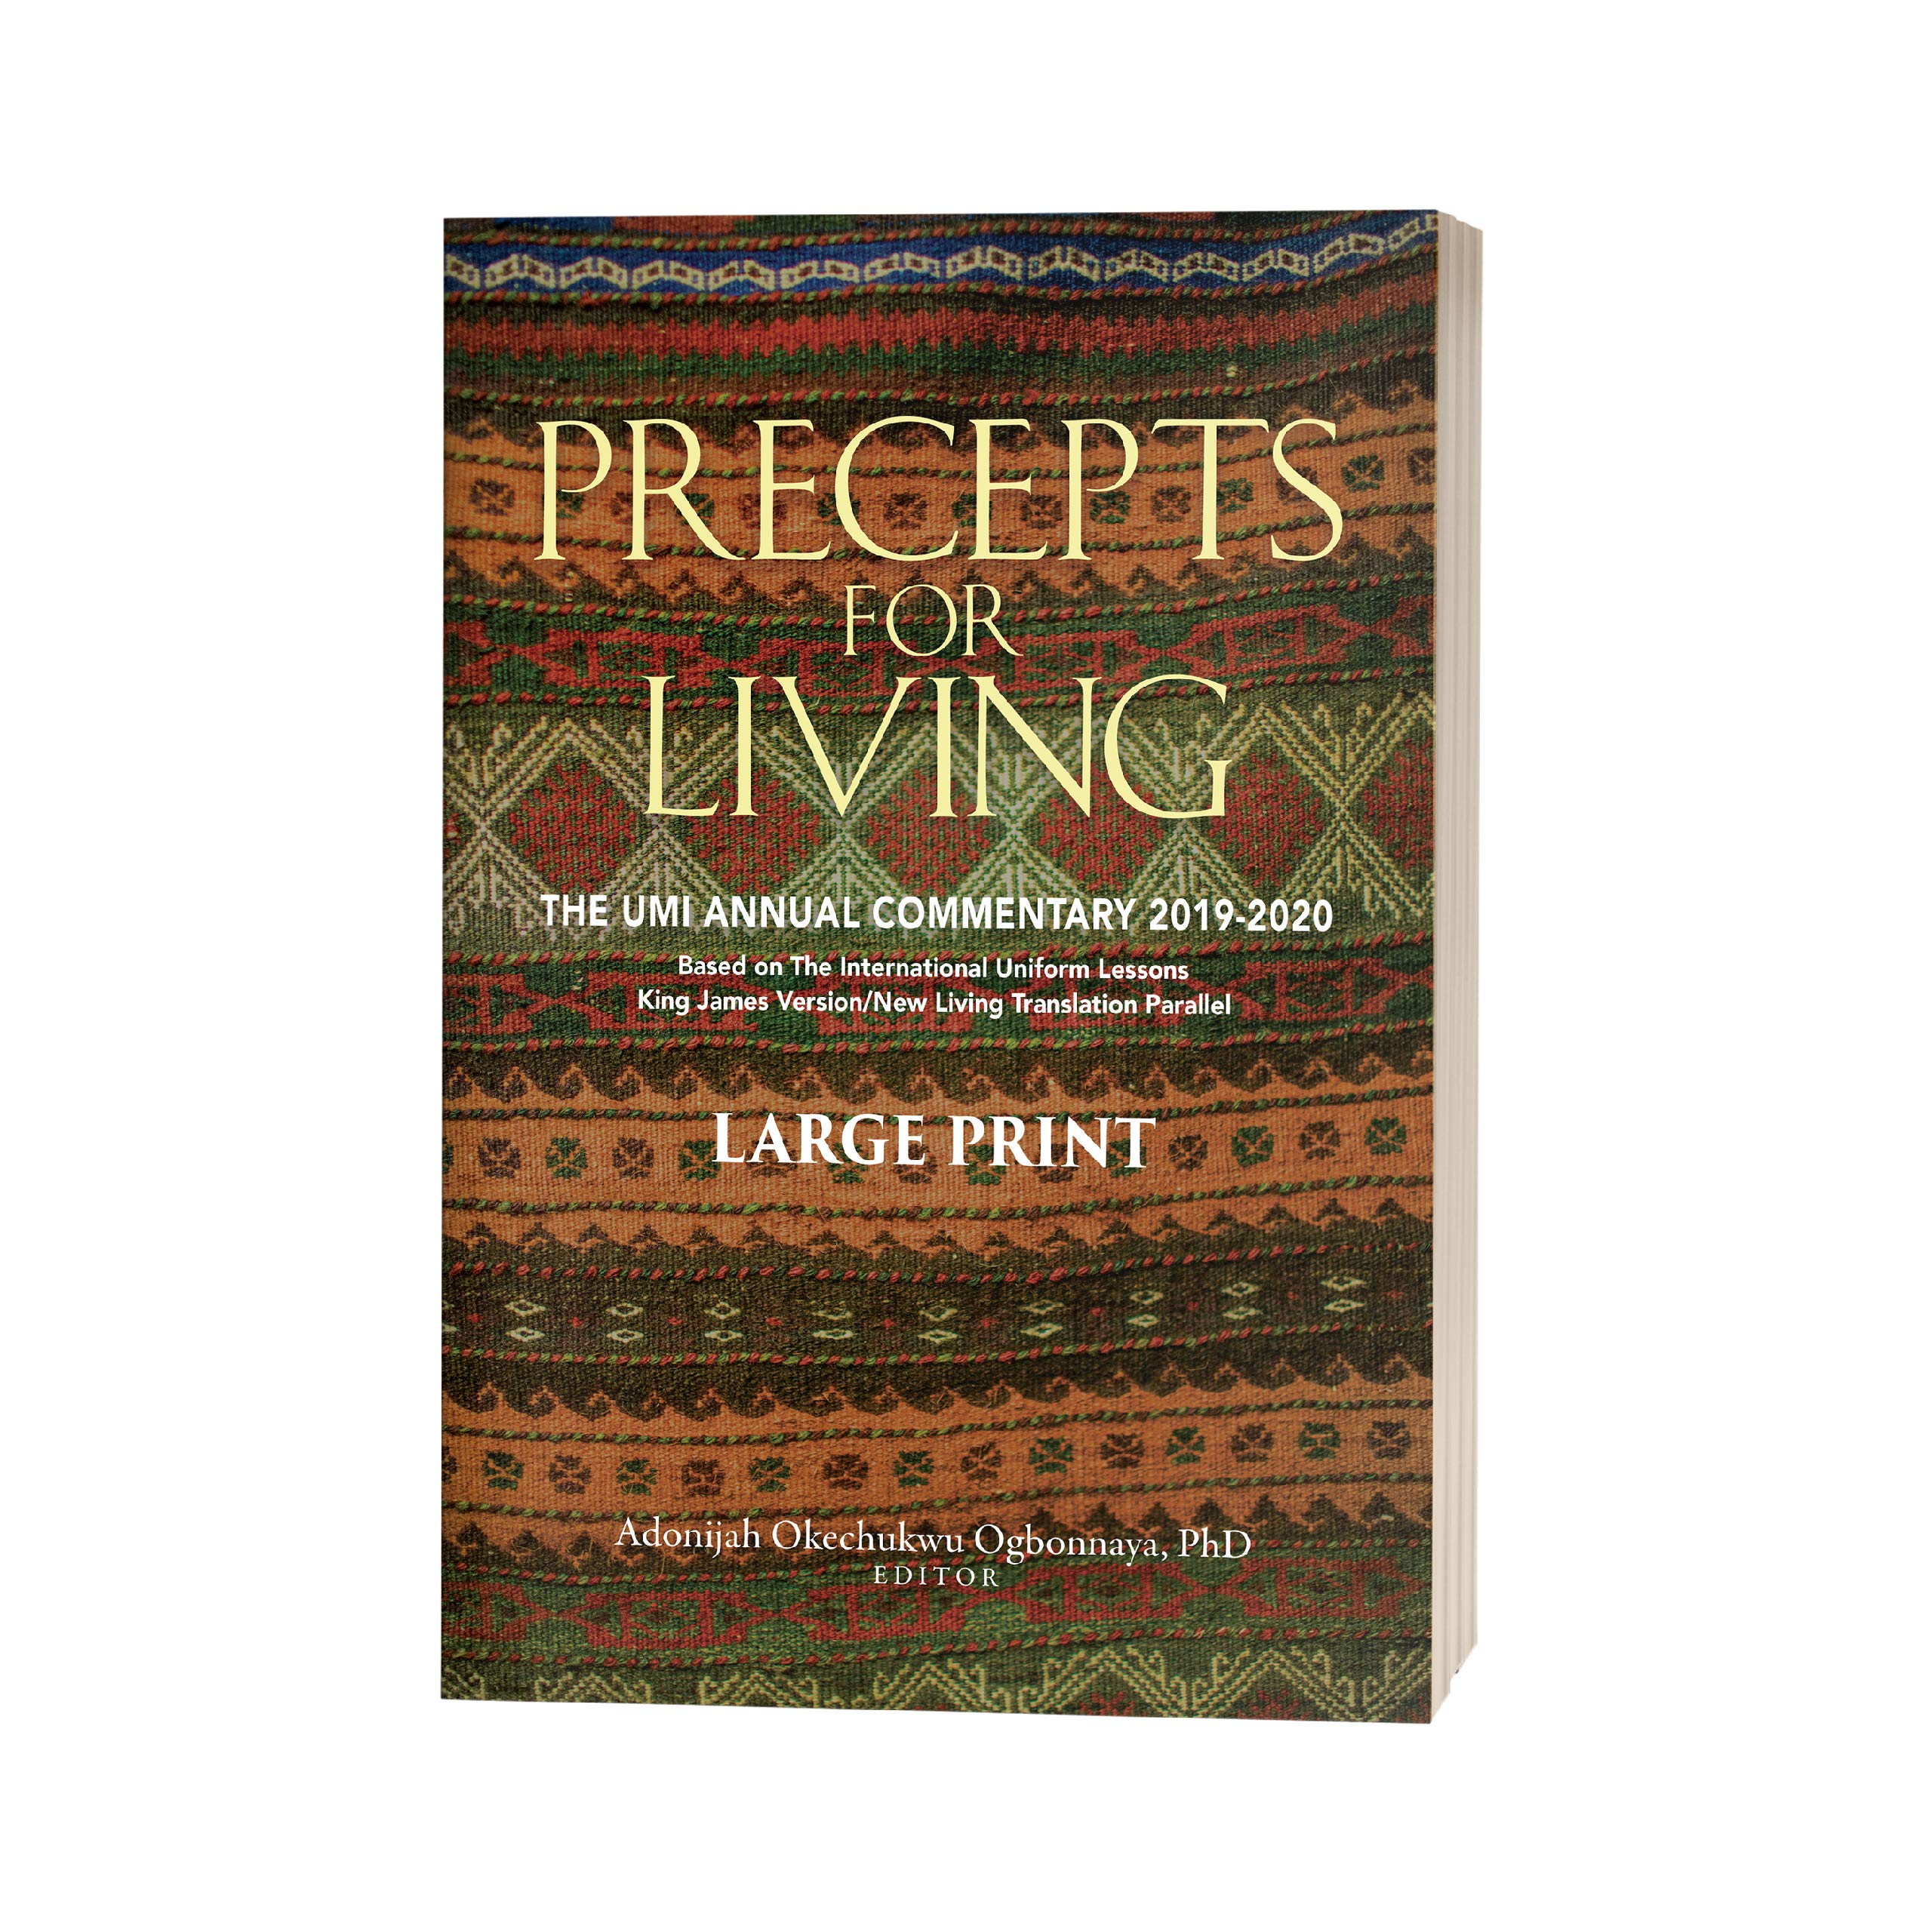 Best Study Bible 2020 Precepts For Living: The UMI Annual Bible Commentary 2019 2020